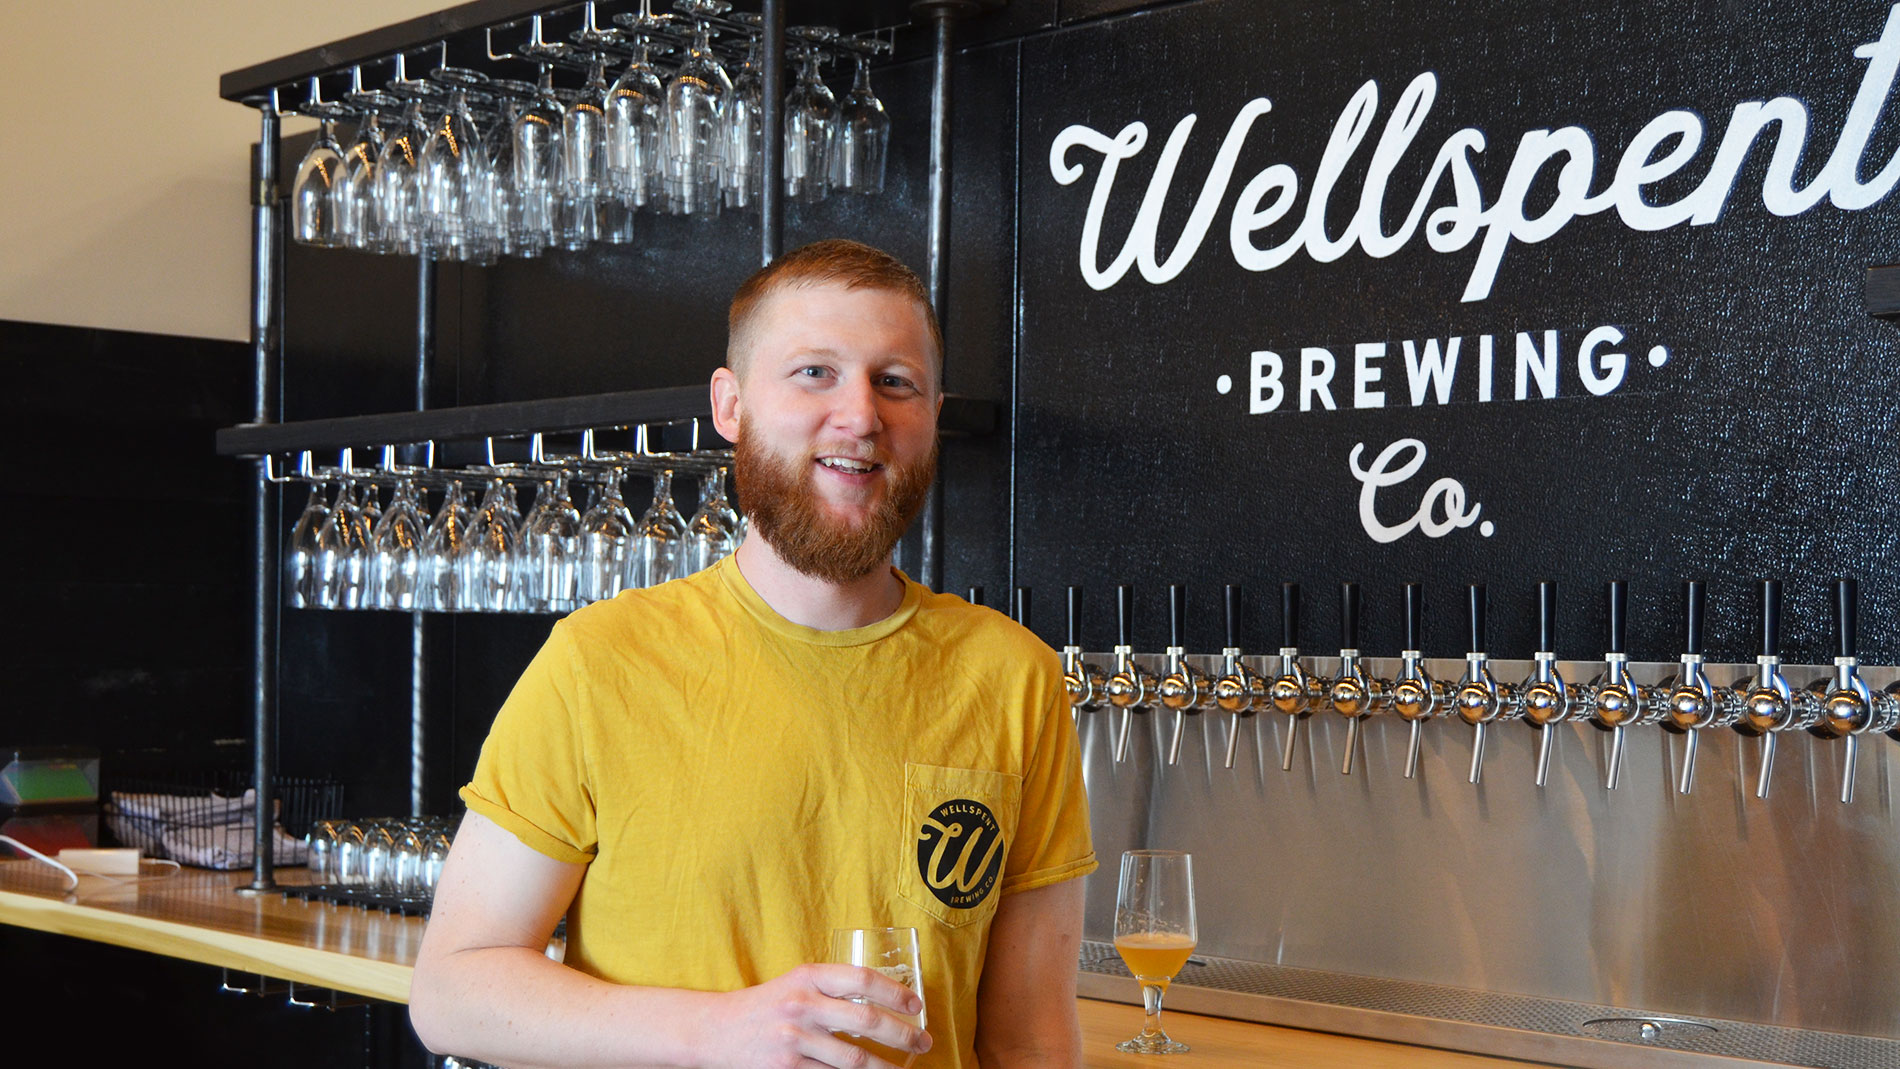 a smiling man behind a bar with a glass of beer